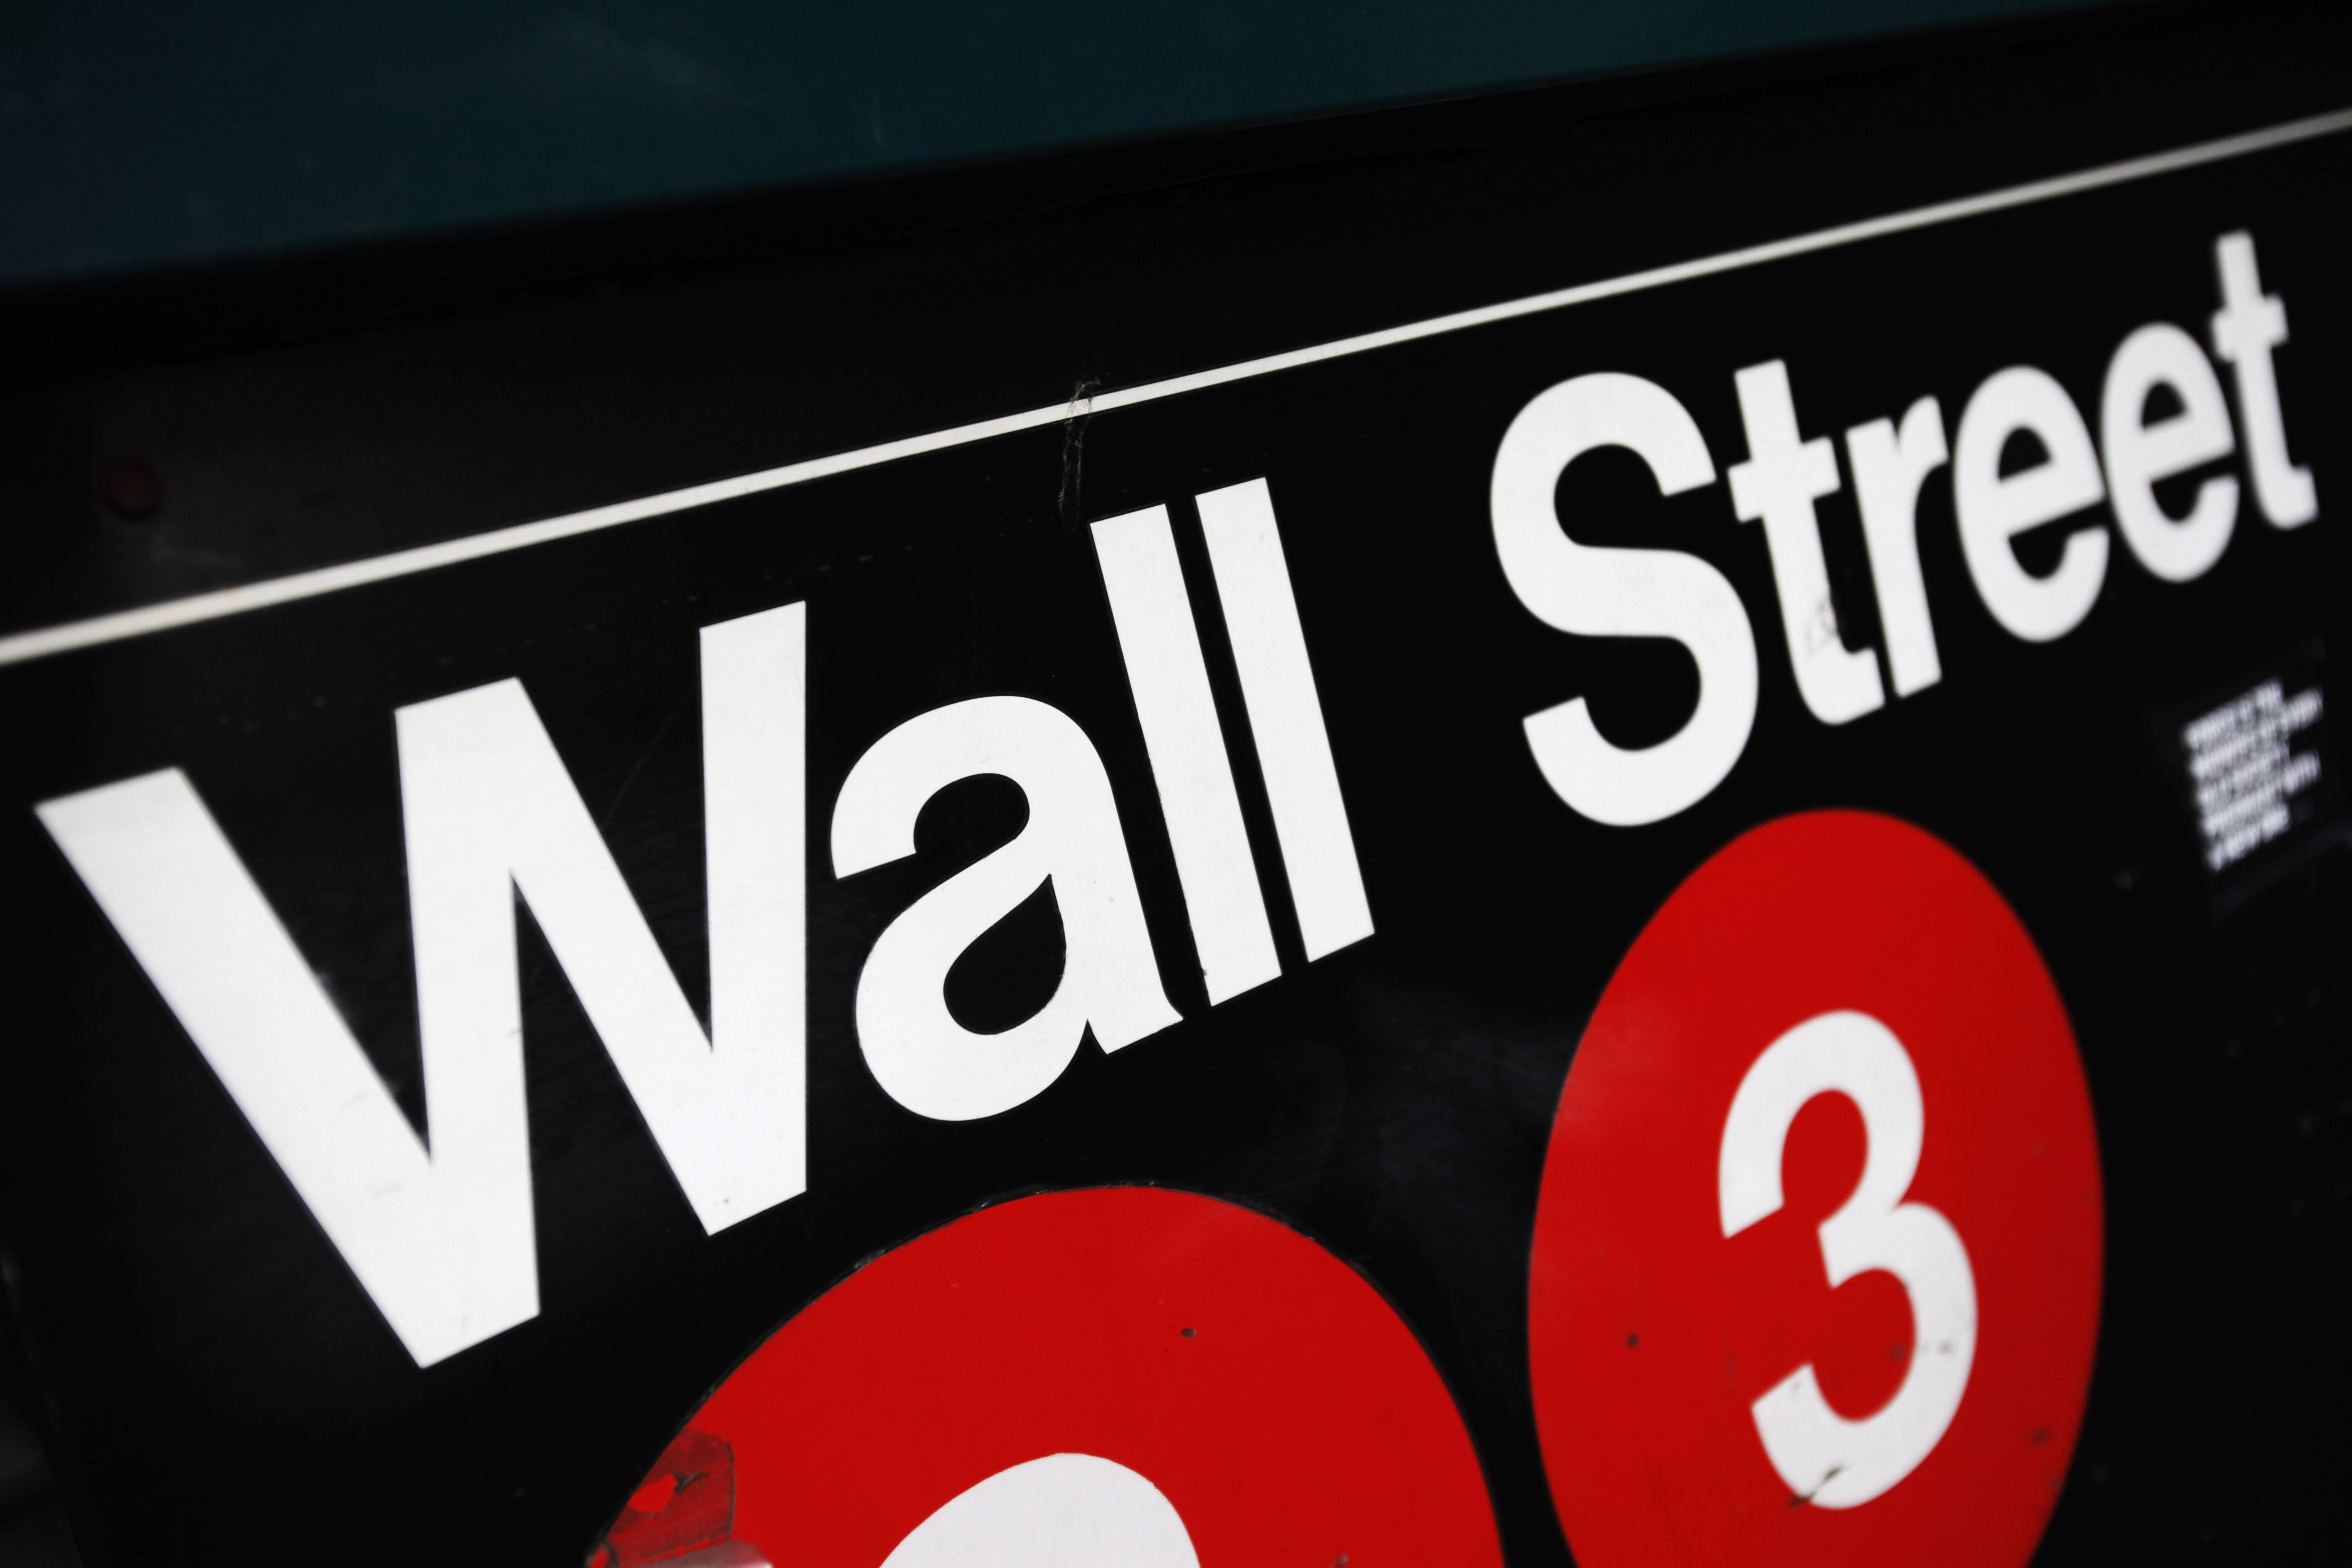 Stocks closed slightly higher Monday as investors turned their focus to corporate news and as tensions eased in Ukraine.